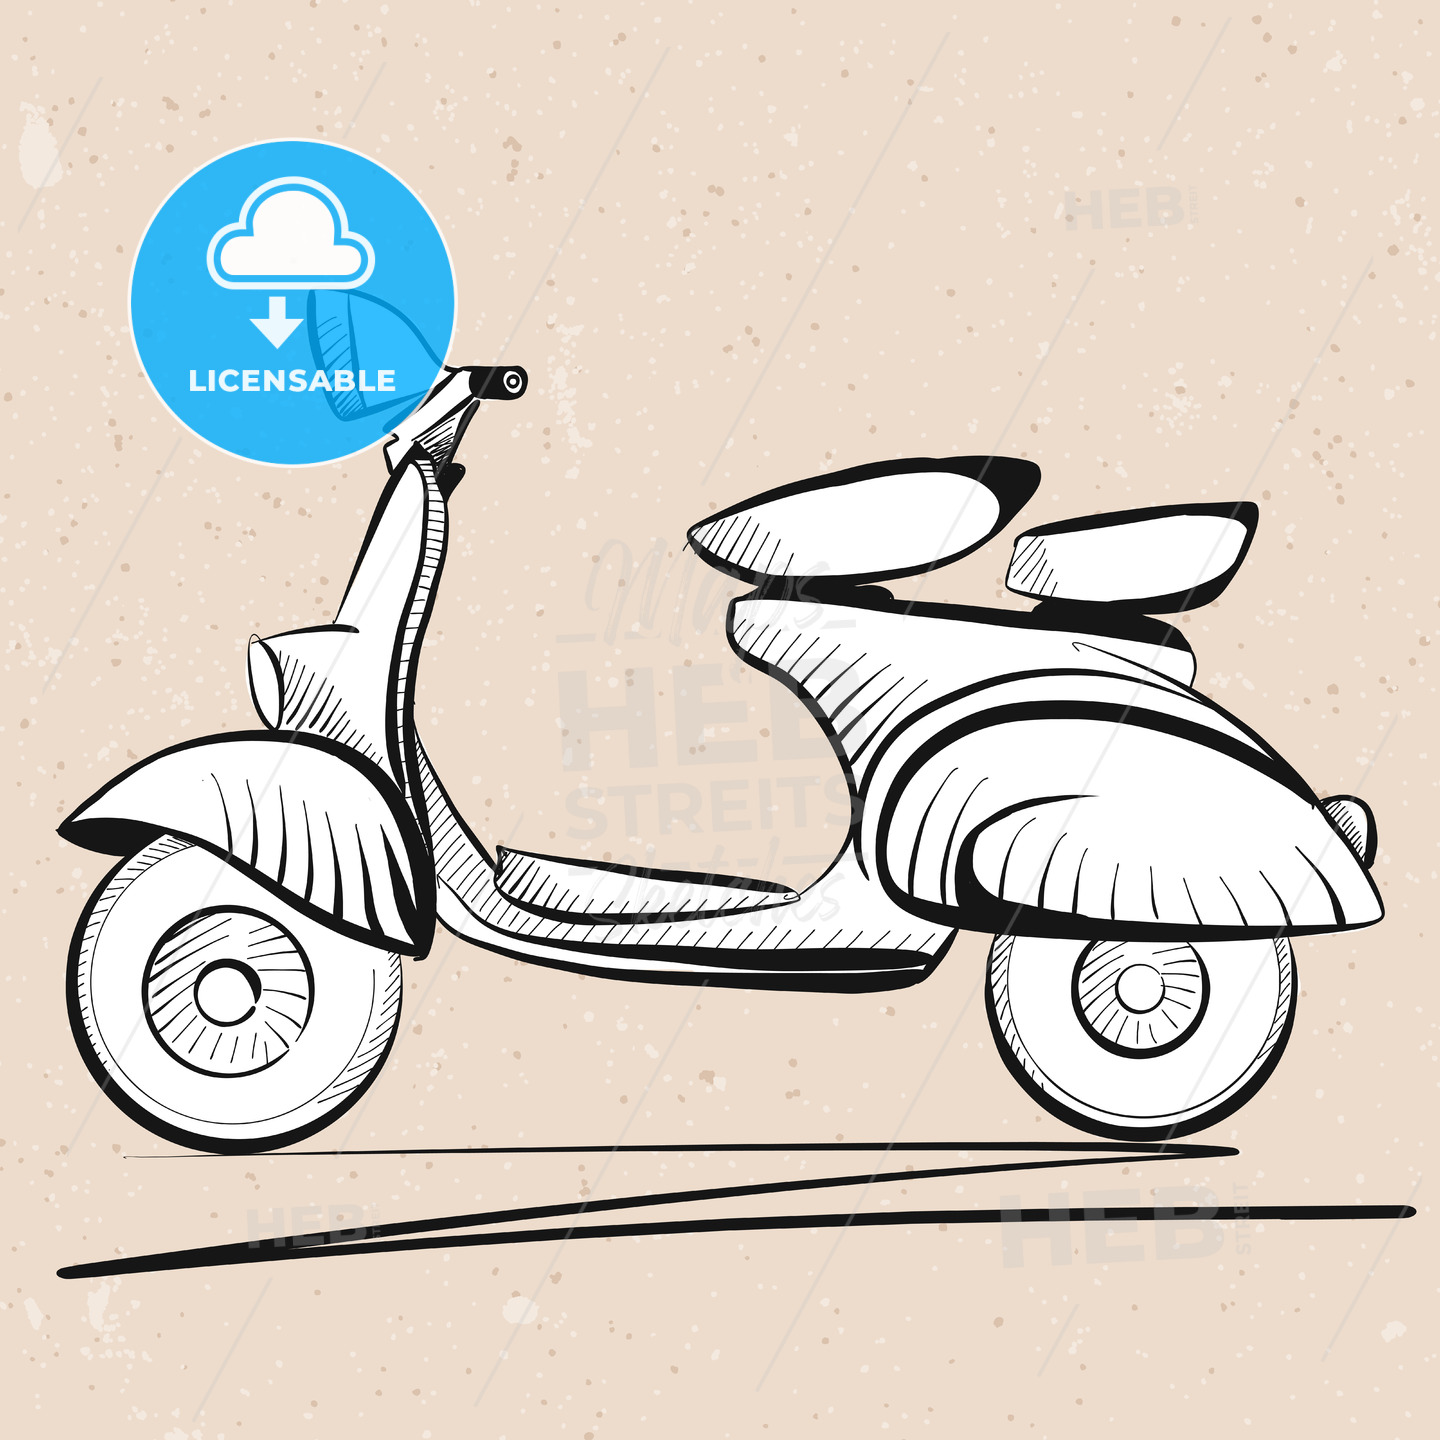 Italian Scooter Outline Sketch on Vintage Background - Hebstreits